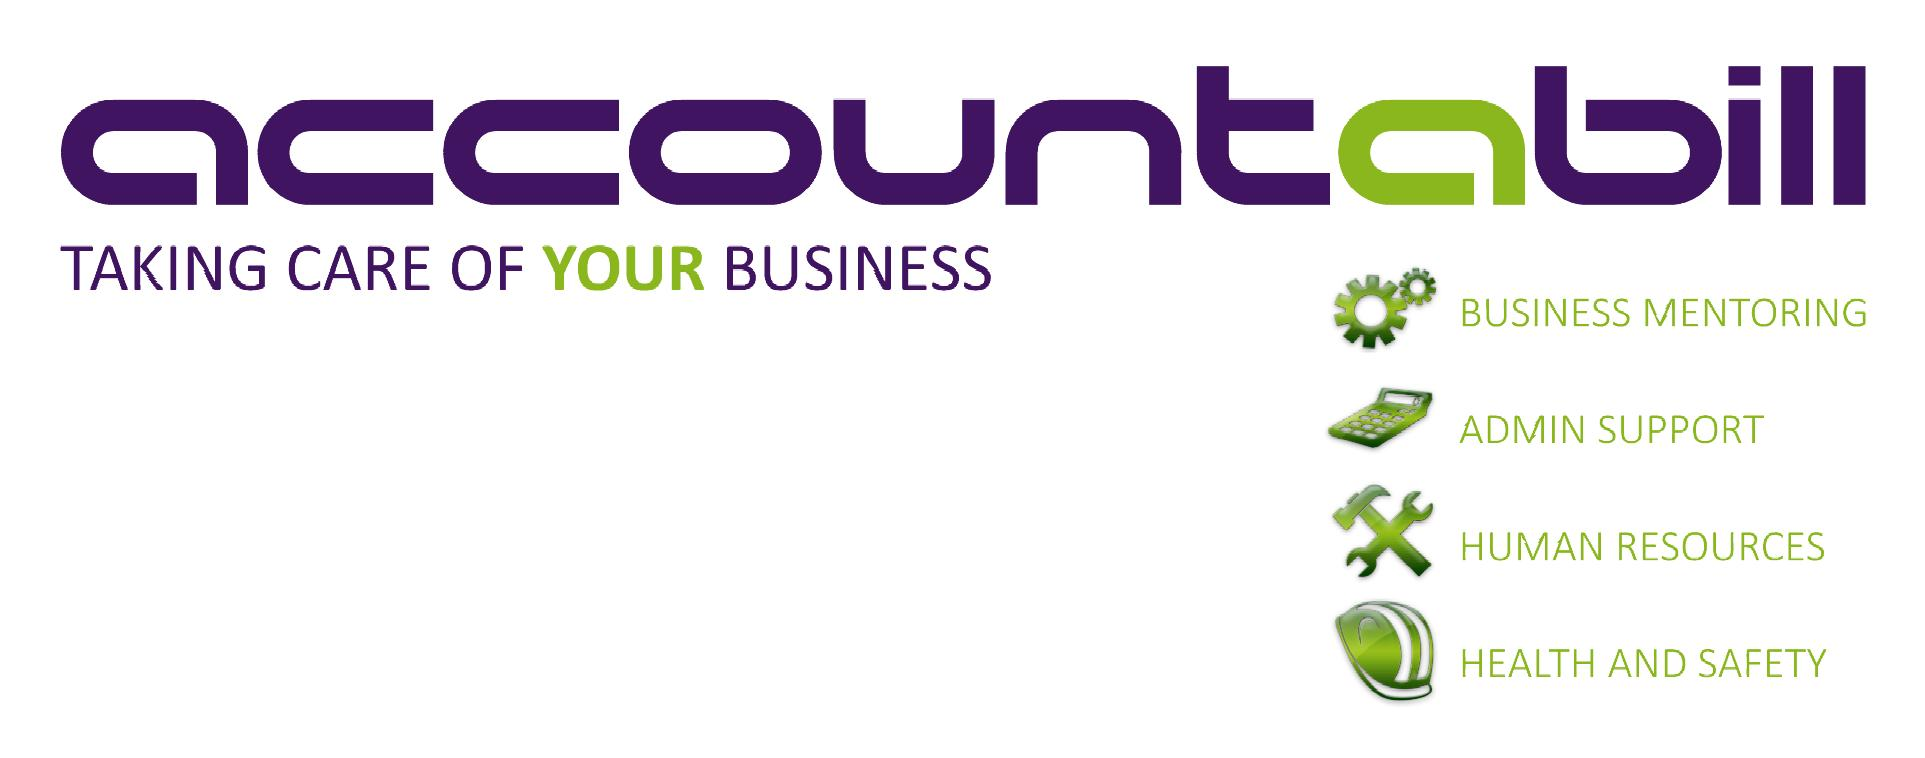 16-01-22 Large Accountabill Logo.jpg